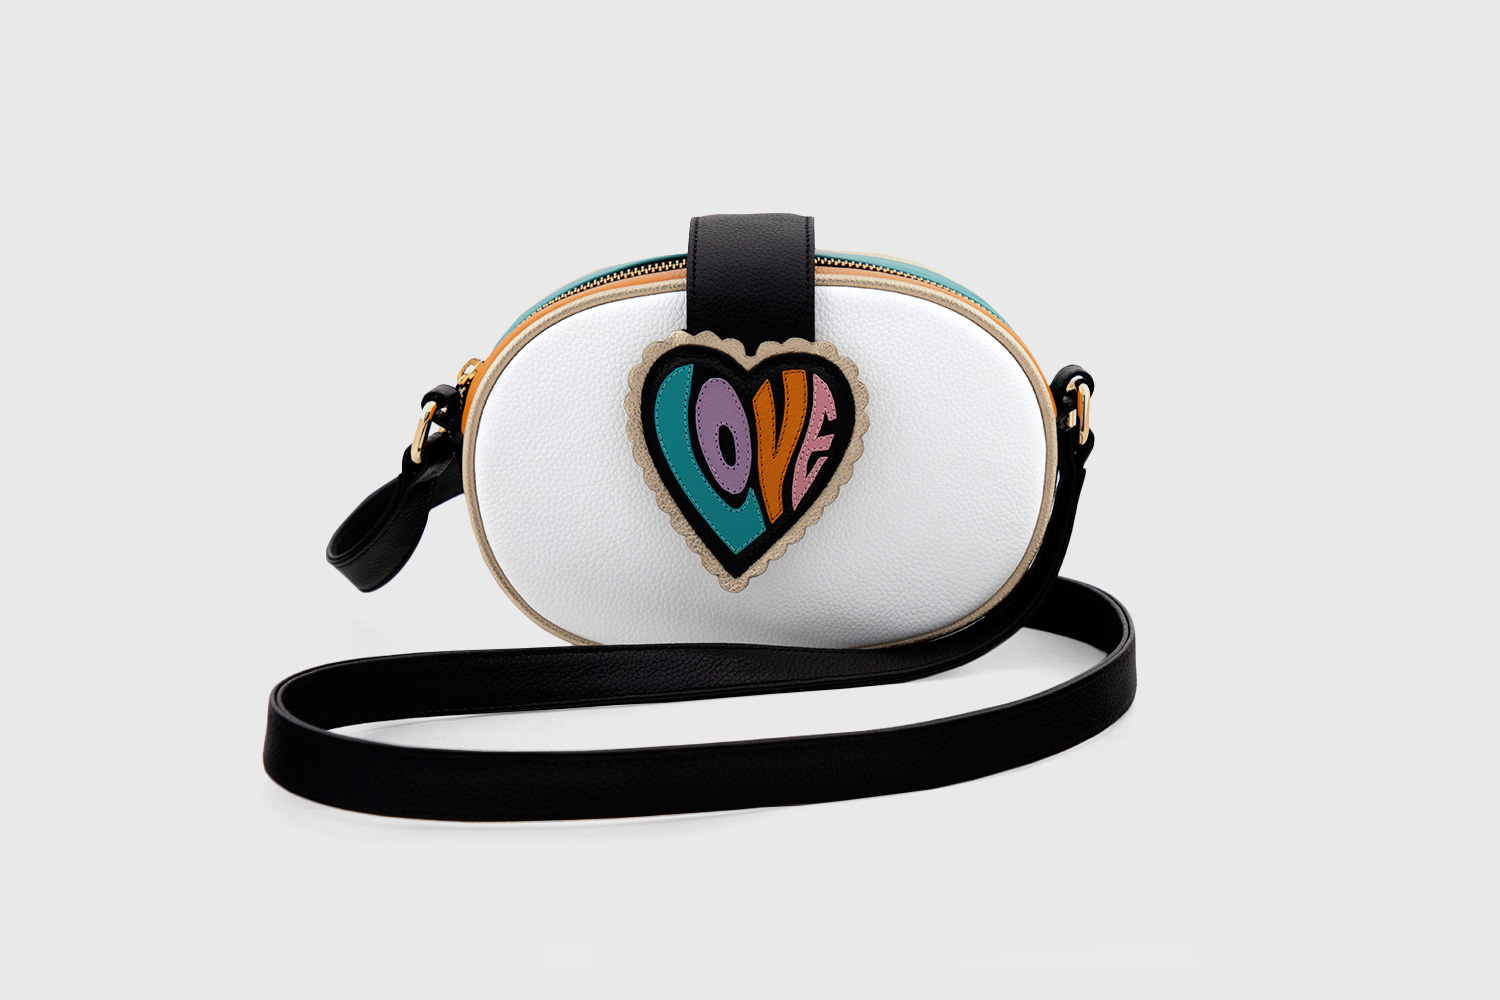 oval-bag-love-2